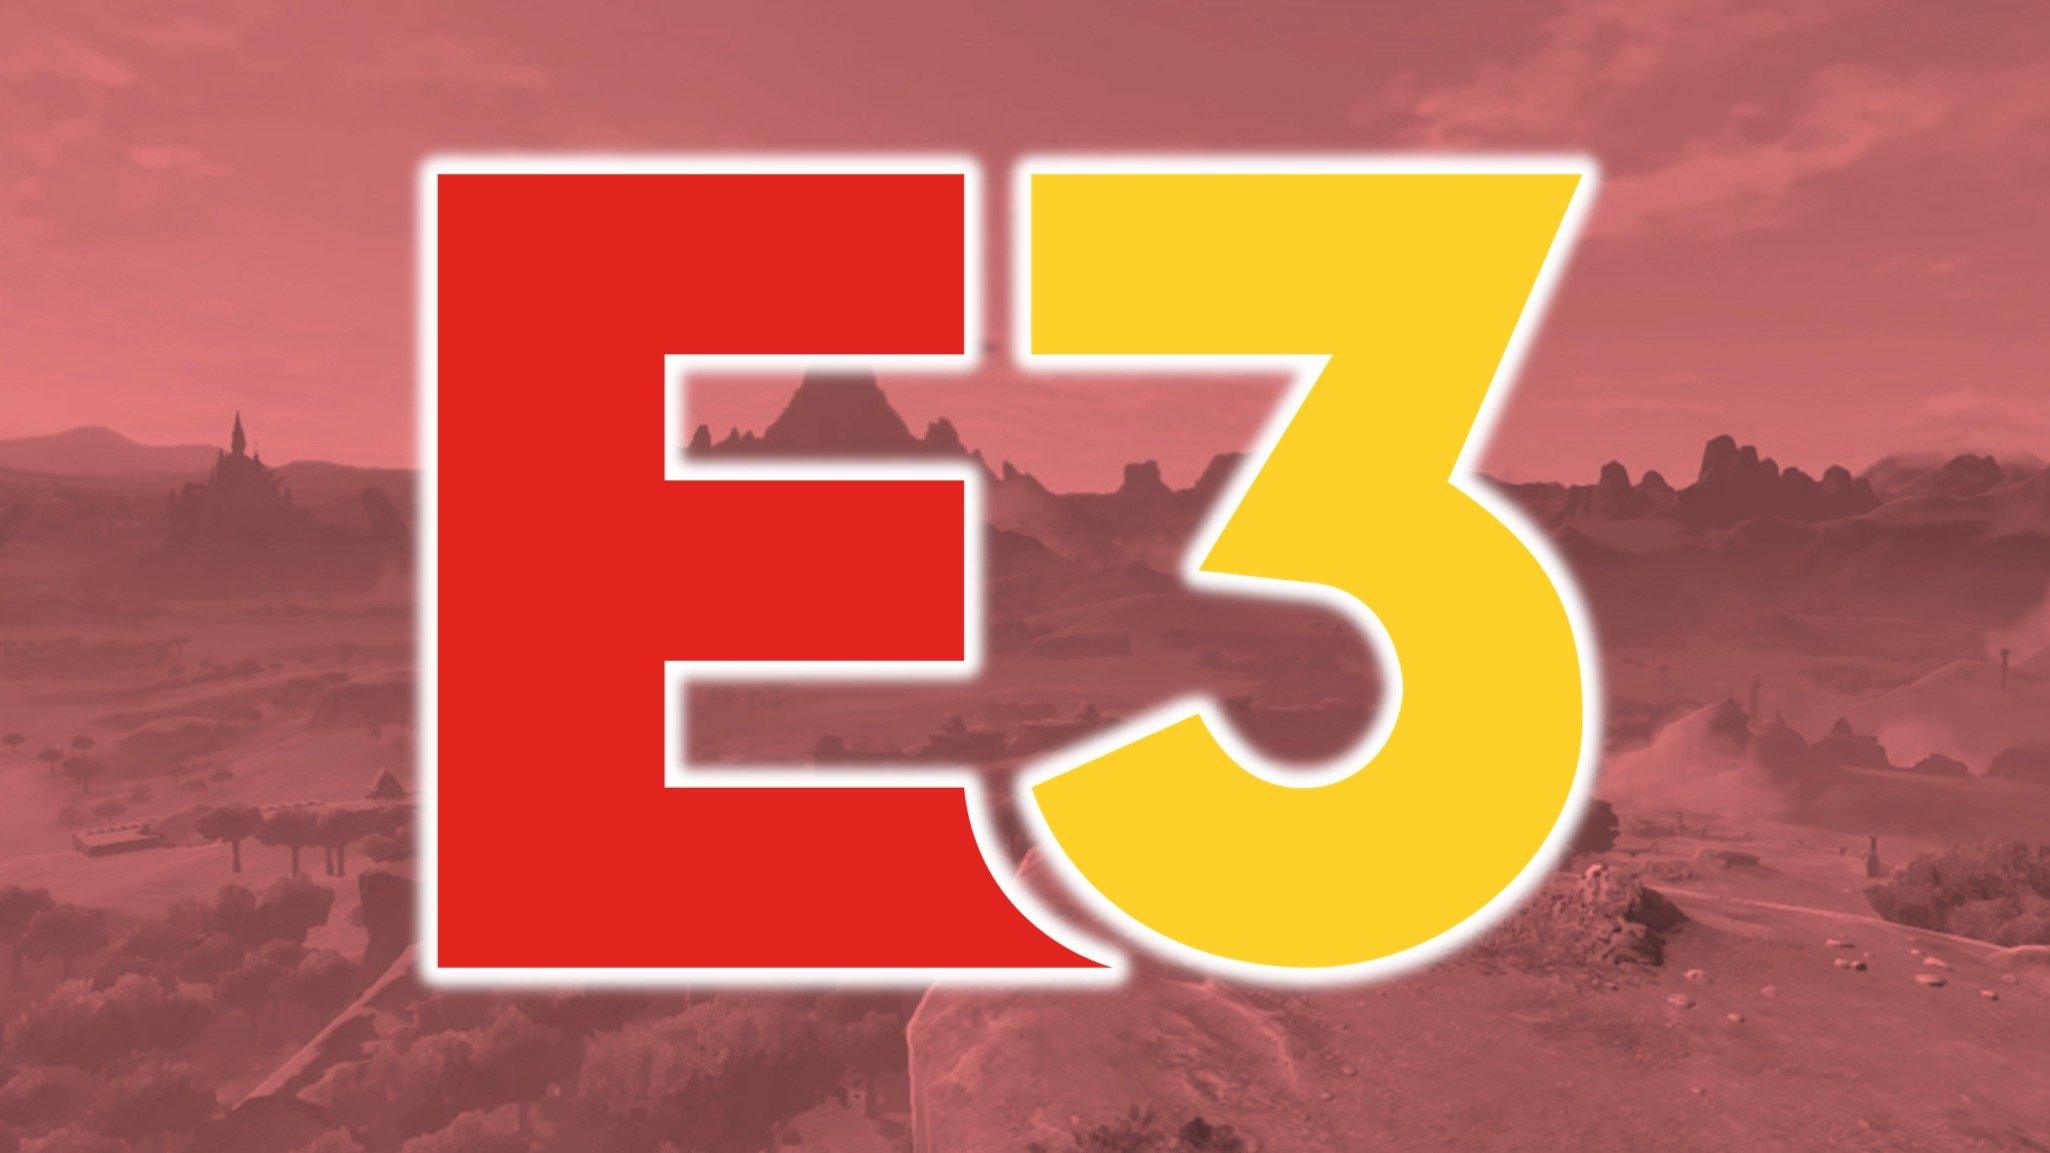 Have The Post-E3 Blues? The Dates For E3 2020 Have Already Been Confirmed